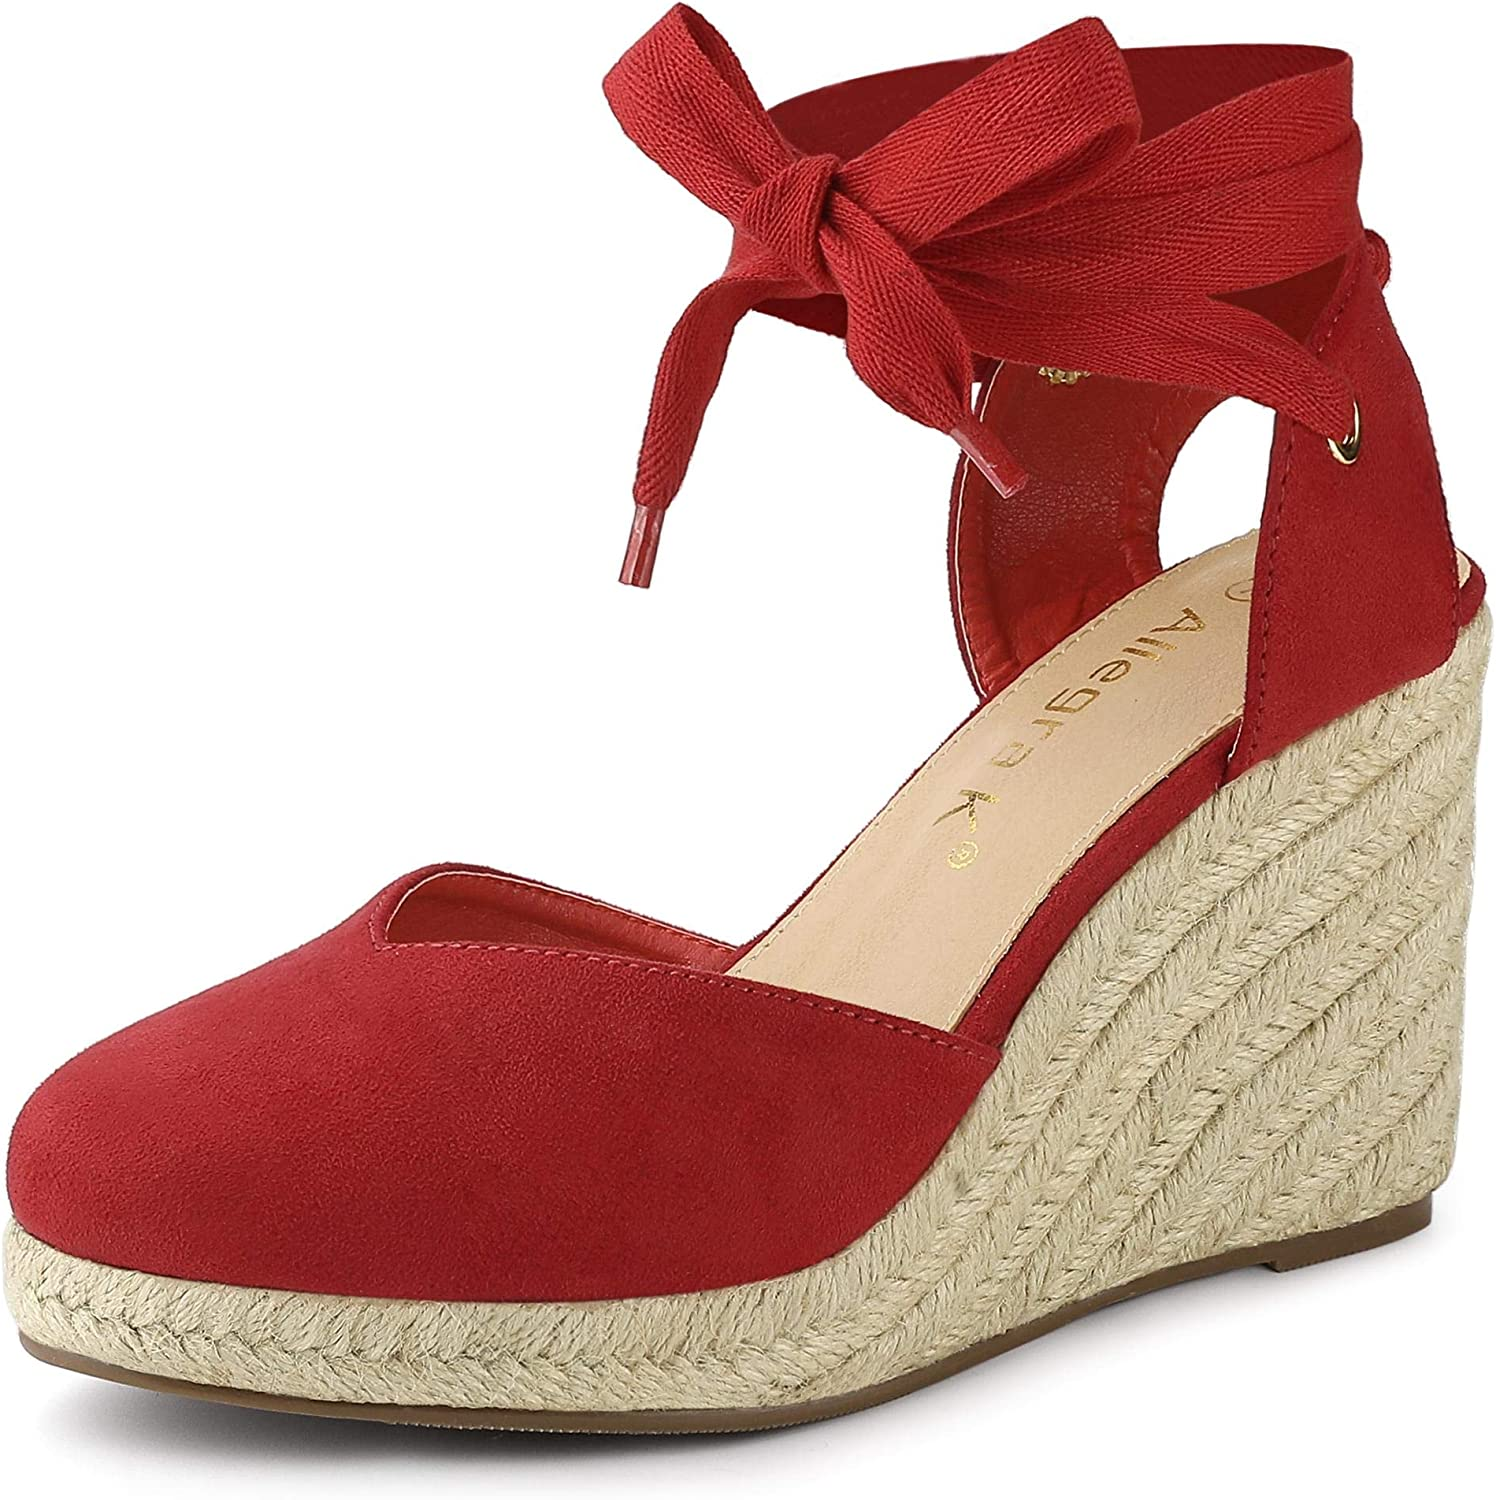 Allegra K Online limited product Women's Purchase Closed Toe Espadrilles Wedge Wedges Up San Tie